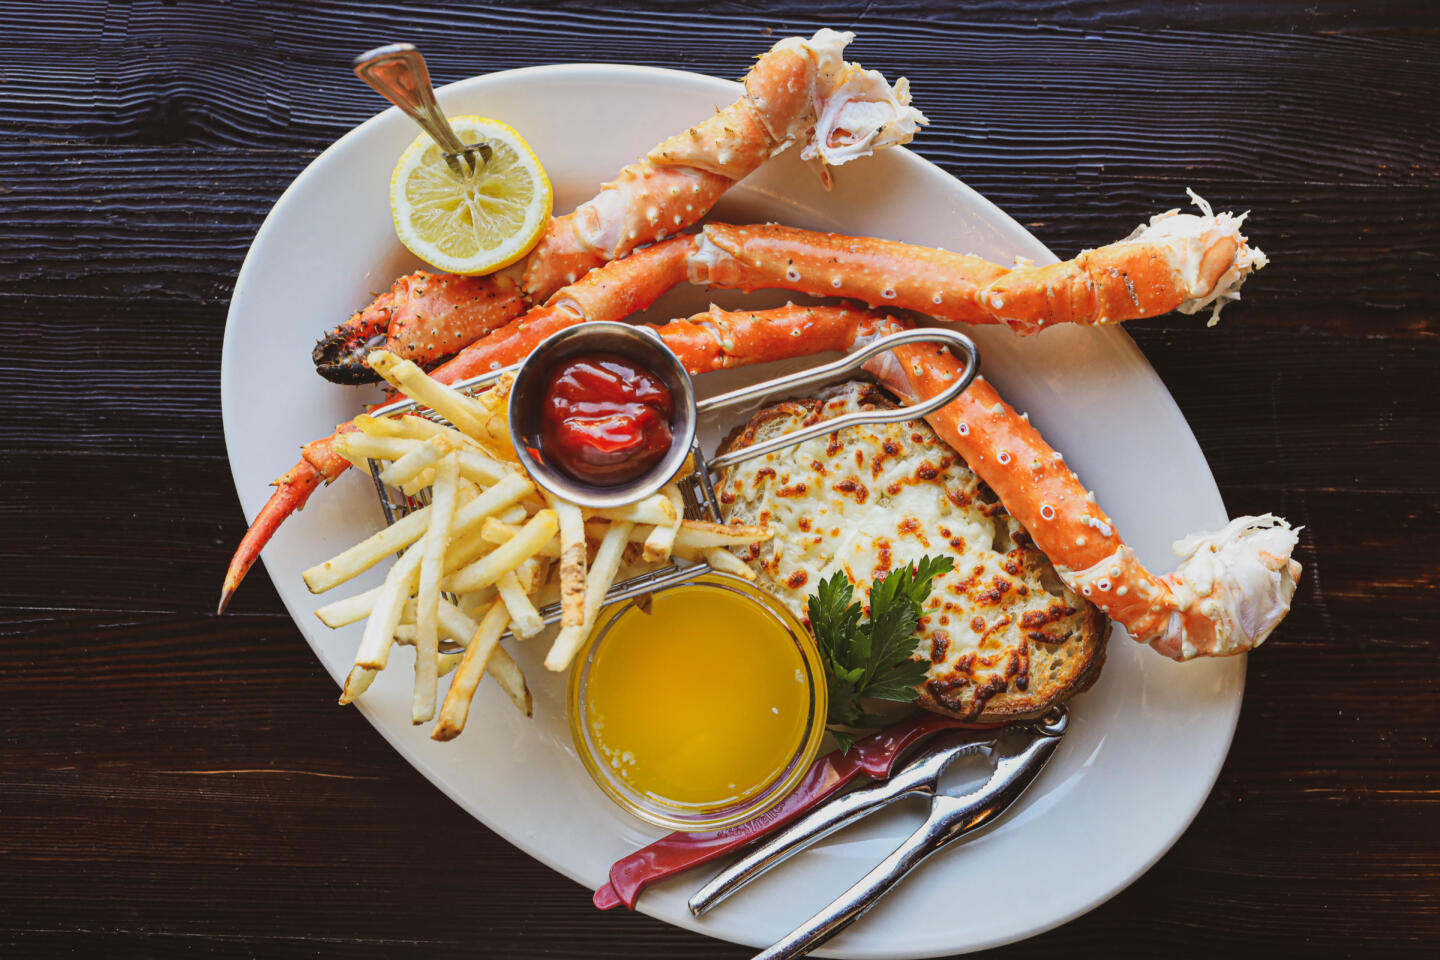 Quality Crab fries and crab legs